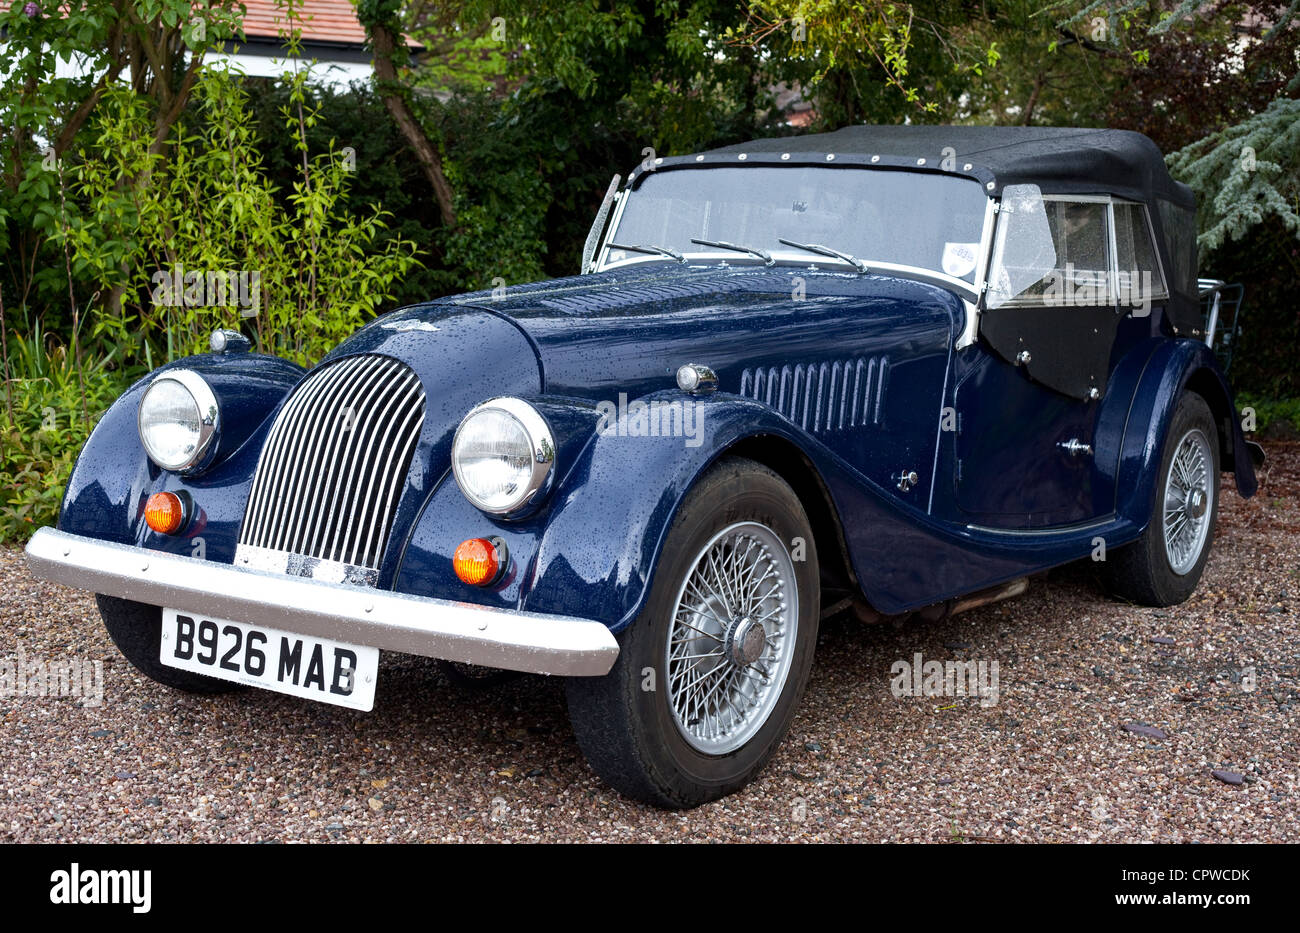 Dark blue Morgan Roadster car, Worcestershire, England, UK - Stock Image